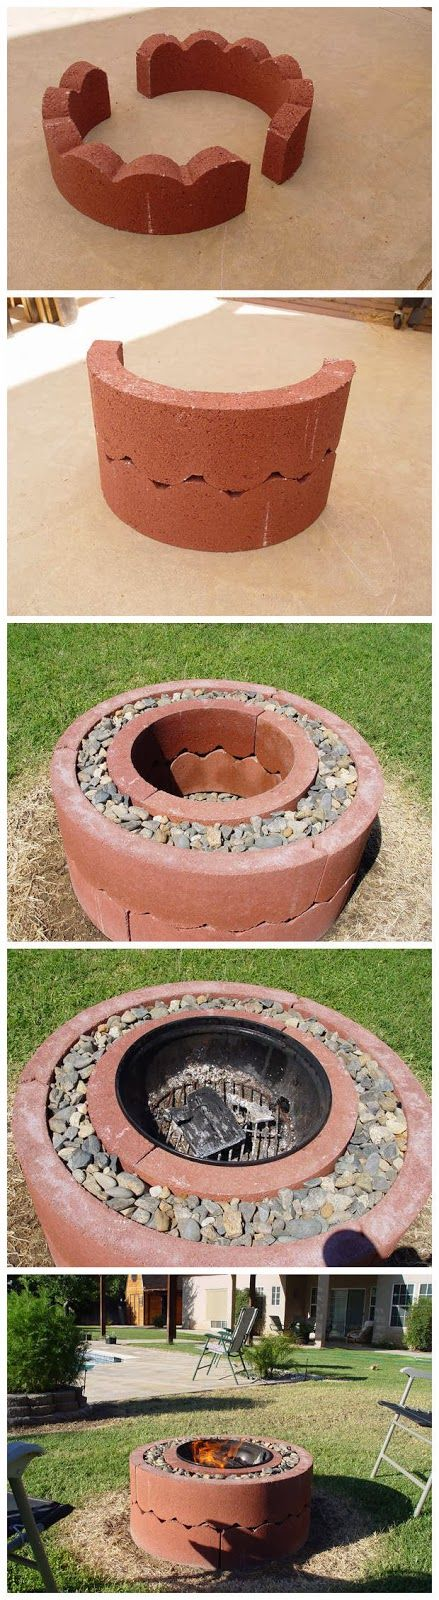 """$50 fire pit using concrete tree rings need: 14 """"' dia grill, 4 sec of 14"""""""" tree ring,6 sec of 24"""""""" tree ring, 2 cubic feet of small stone. The ring is about 2-5 dollars a piece."""